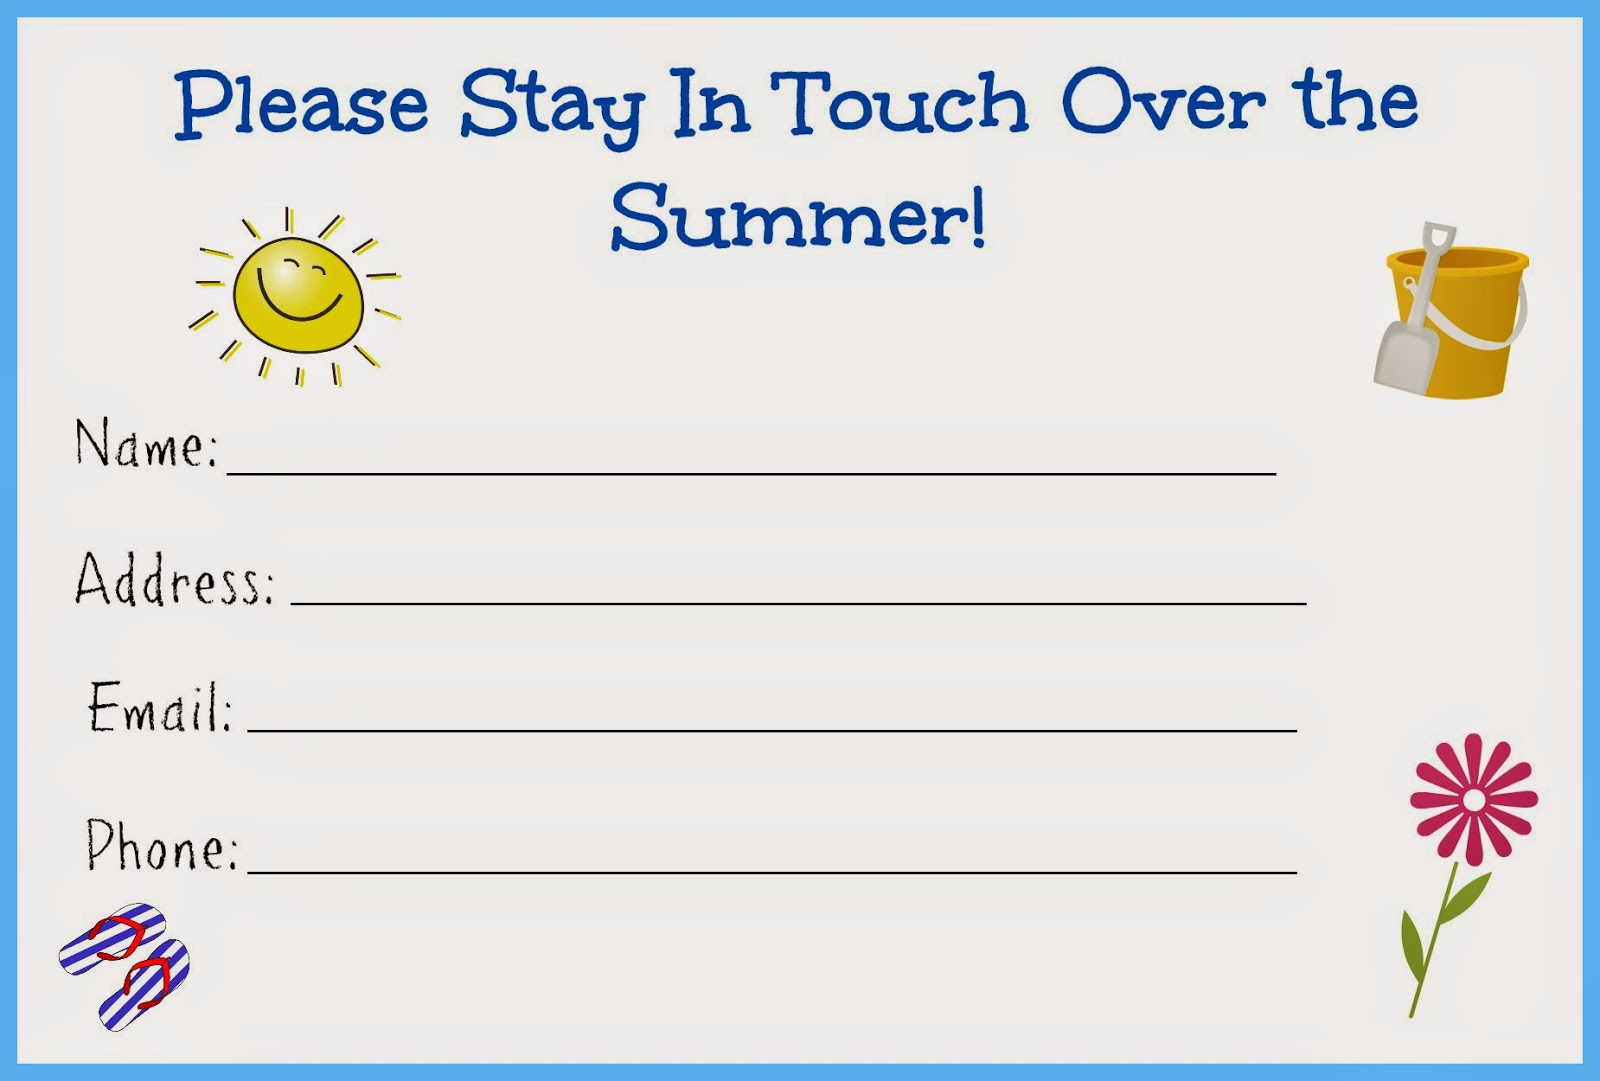 Stay in Touch Over the Summer Card for Kids - Free Printable.  Stay in touch cards.  Printable Stay in Touch over the summer card.